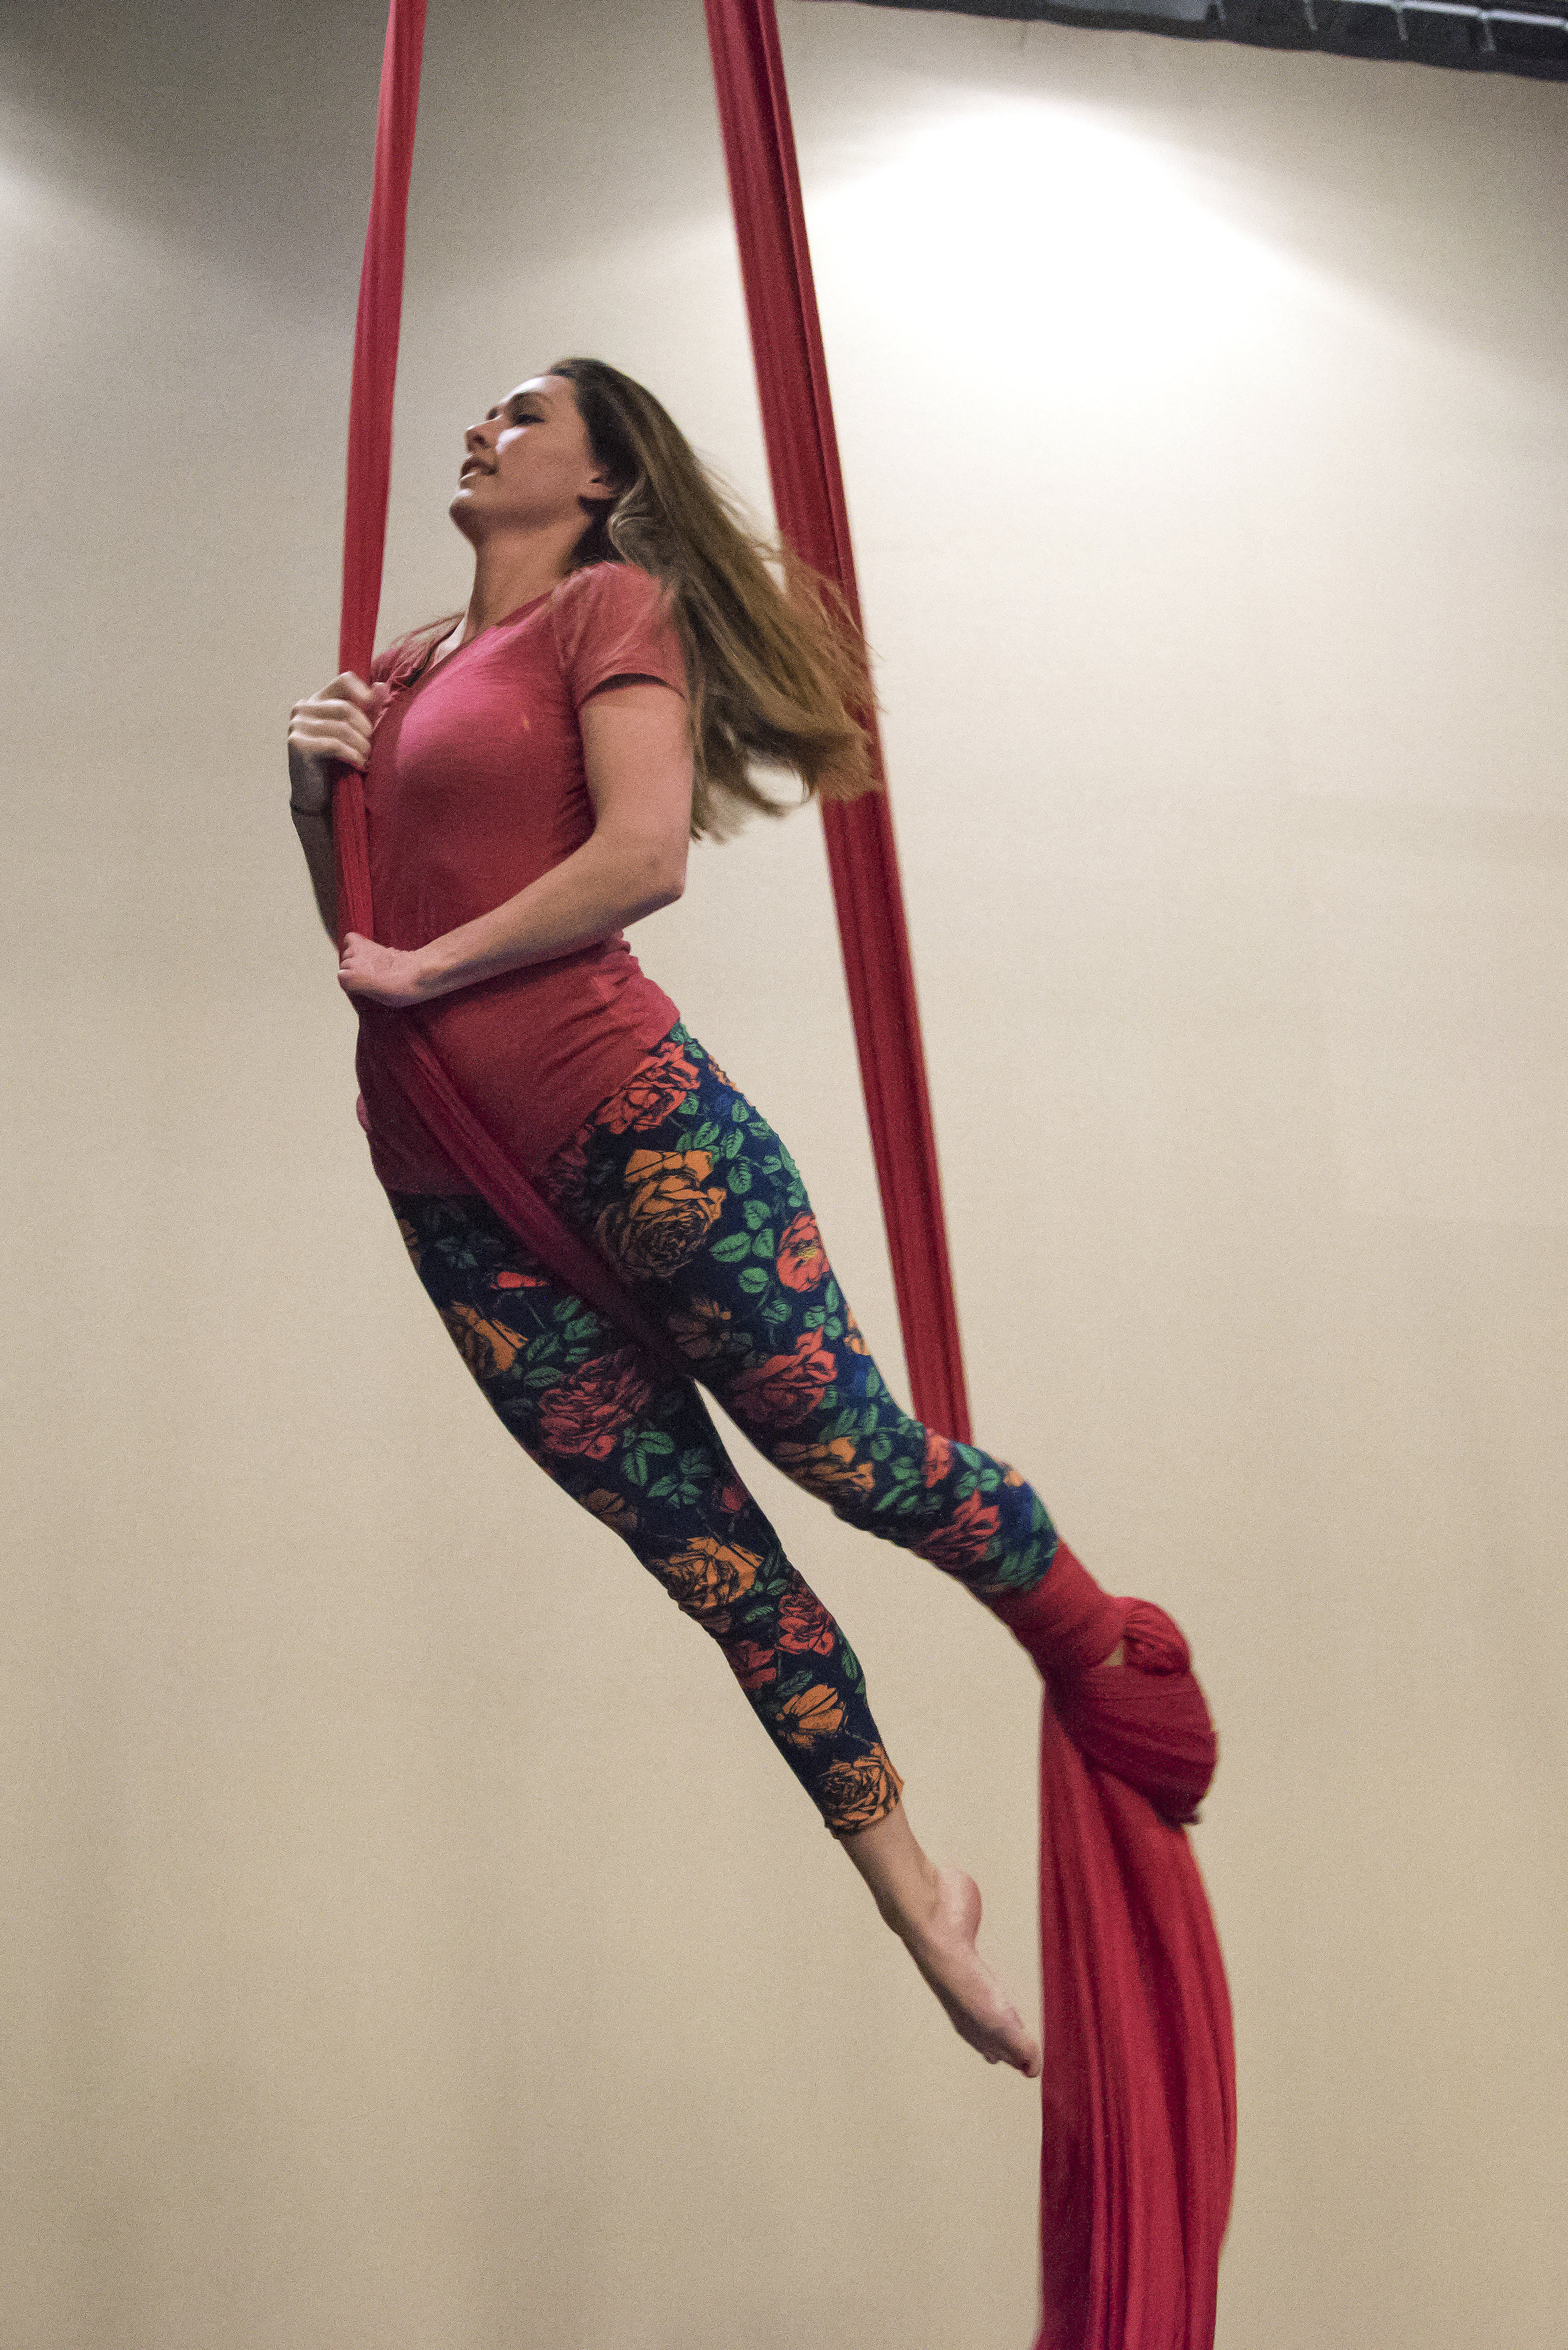 Suspended three feet in the air, Tuberty performs a peppermint wrap, one of the first silks moves students learn in a beginner aerial class. Tuberty must find new and different ways to approach aerial moves in order to accommodate the limited use of her left hand.